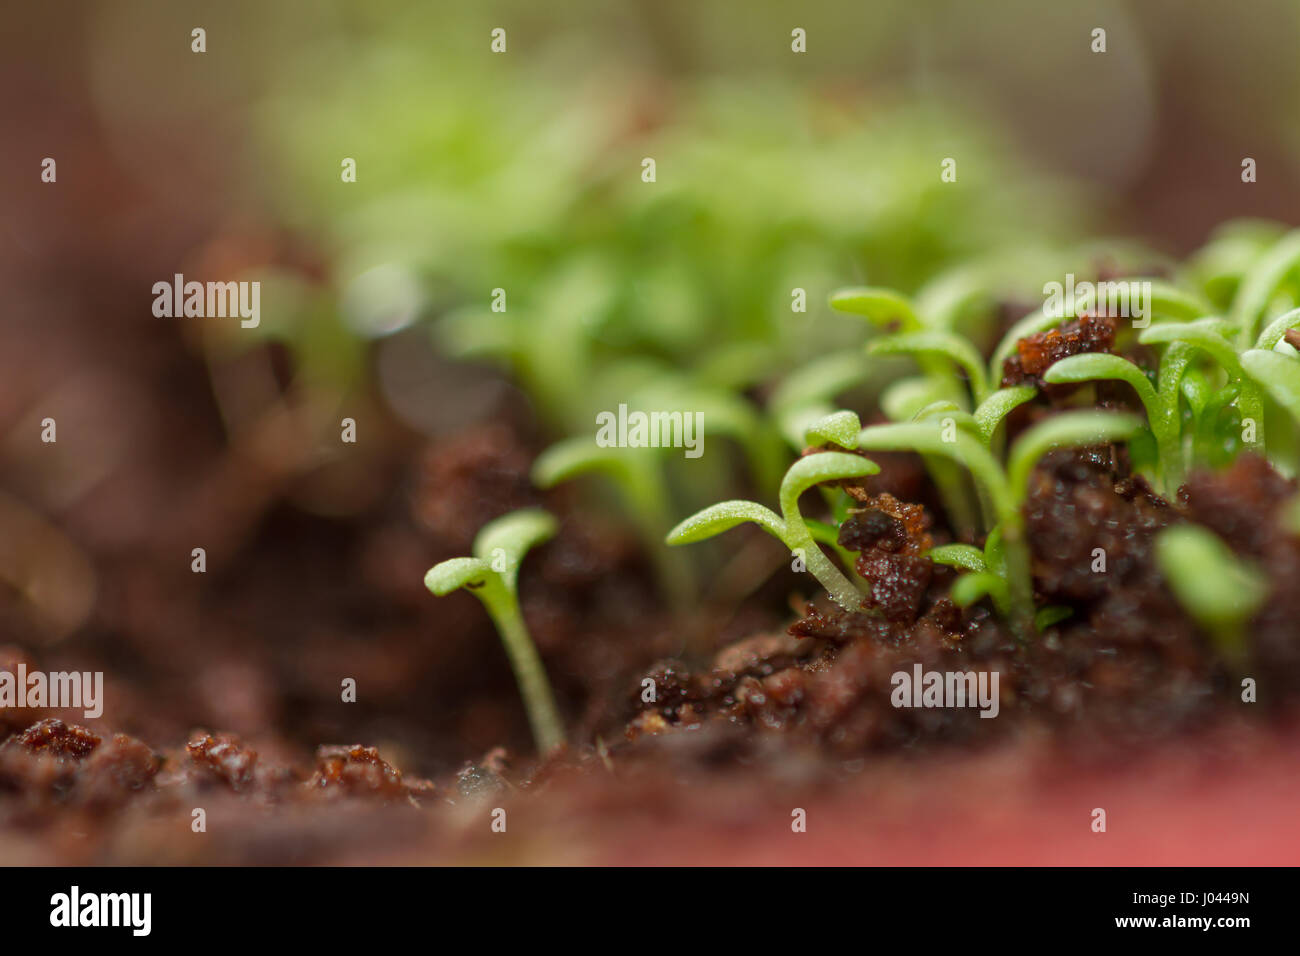 Green chamomile sprouts. Cress sprouts - Stock Image